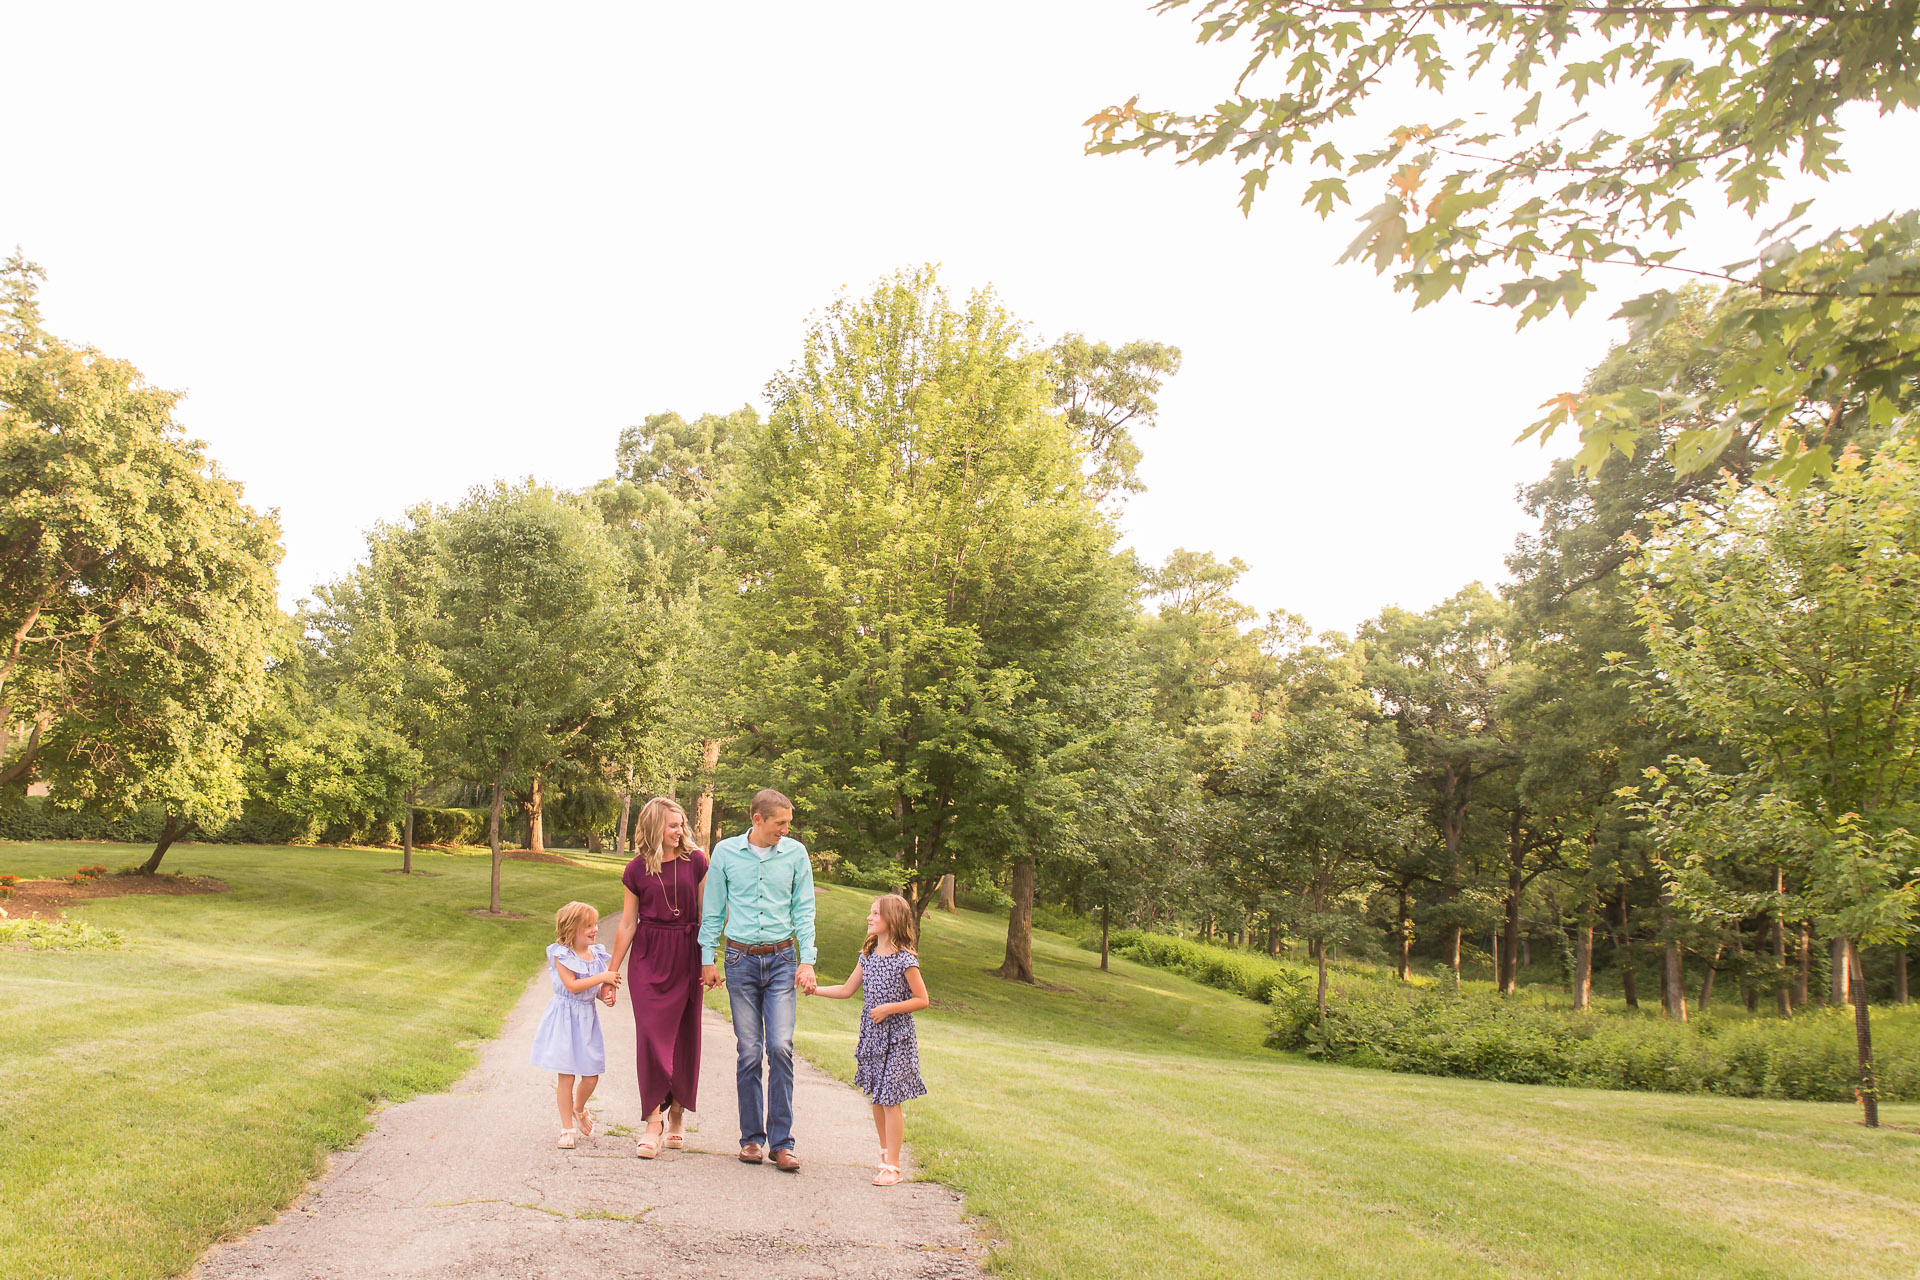 Family-Photography-Des-Moines-Family-Walking-On-Path